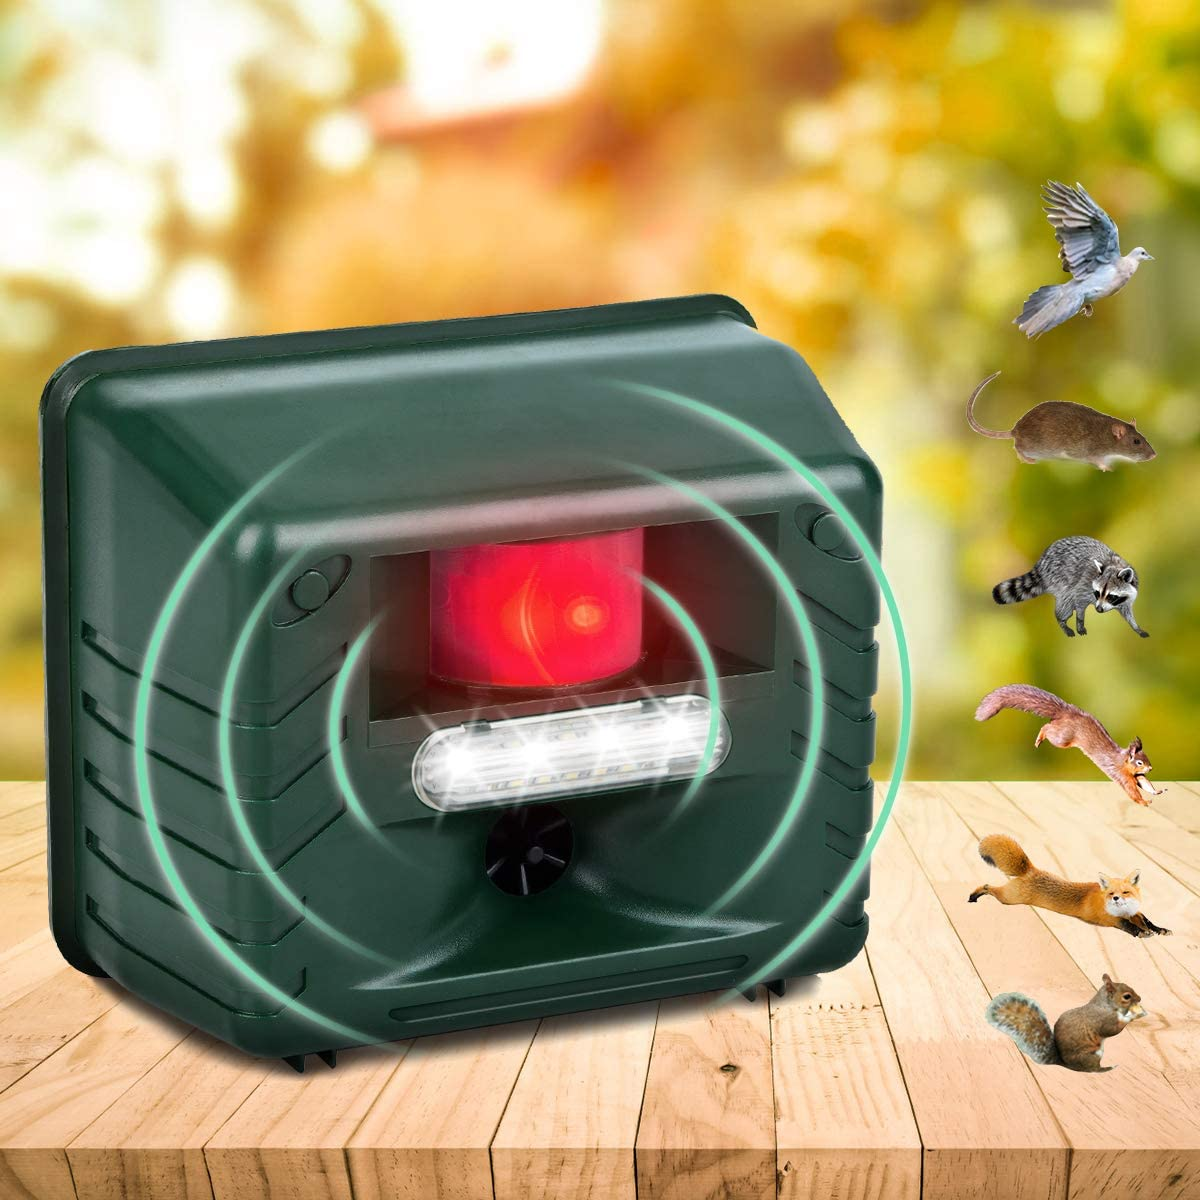 Allinall Outdoor Animal Repeller,Ultrasonic Pest Animal Repellent Garden Dog Car Bird Repellent Device,Yard Guard Mice Rat Rodent Fox Repellent Bird Deterrent Devices with LED Flash Lights and Alarm